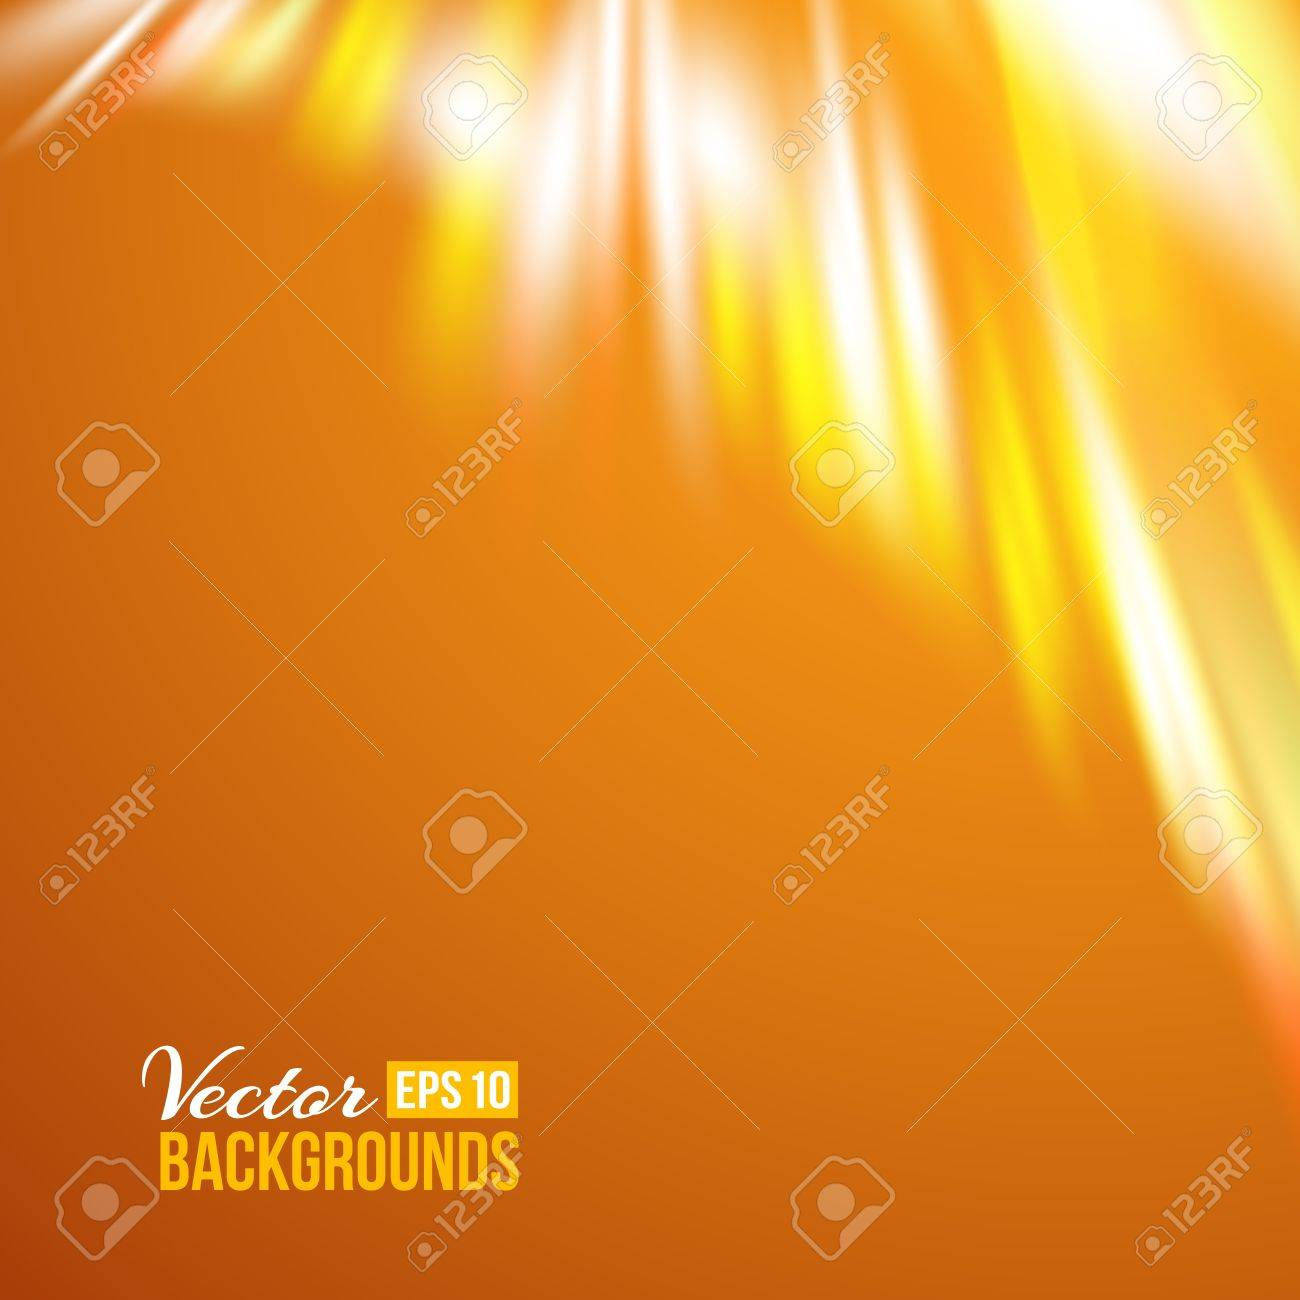 Northern Lights  Aurora borealis  over orange  Vector illustration Stock Vector - 17773412